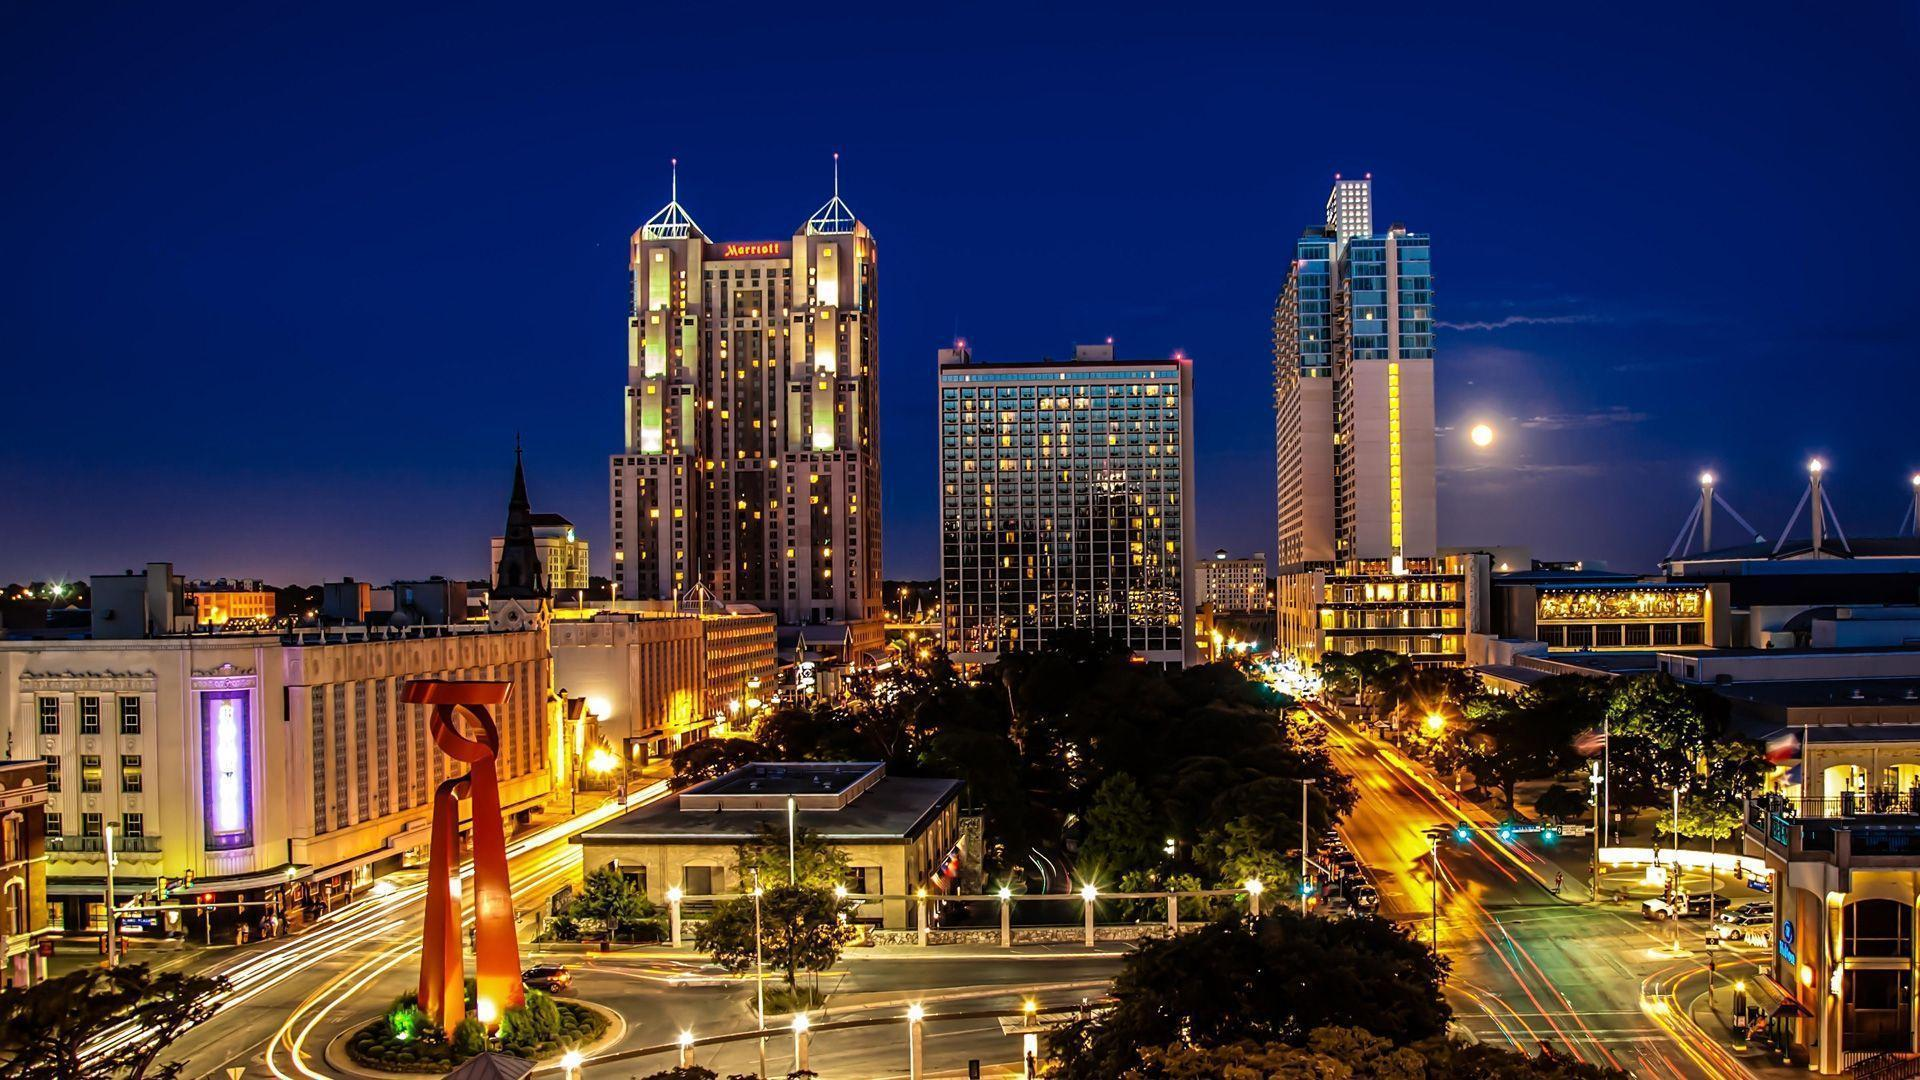 San Antonio skyline view at night,